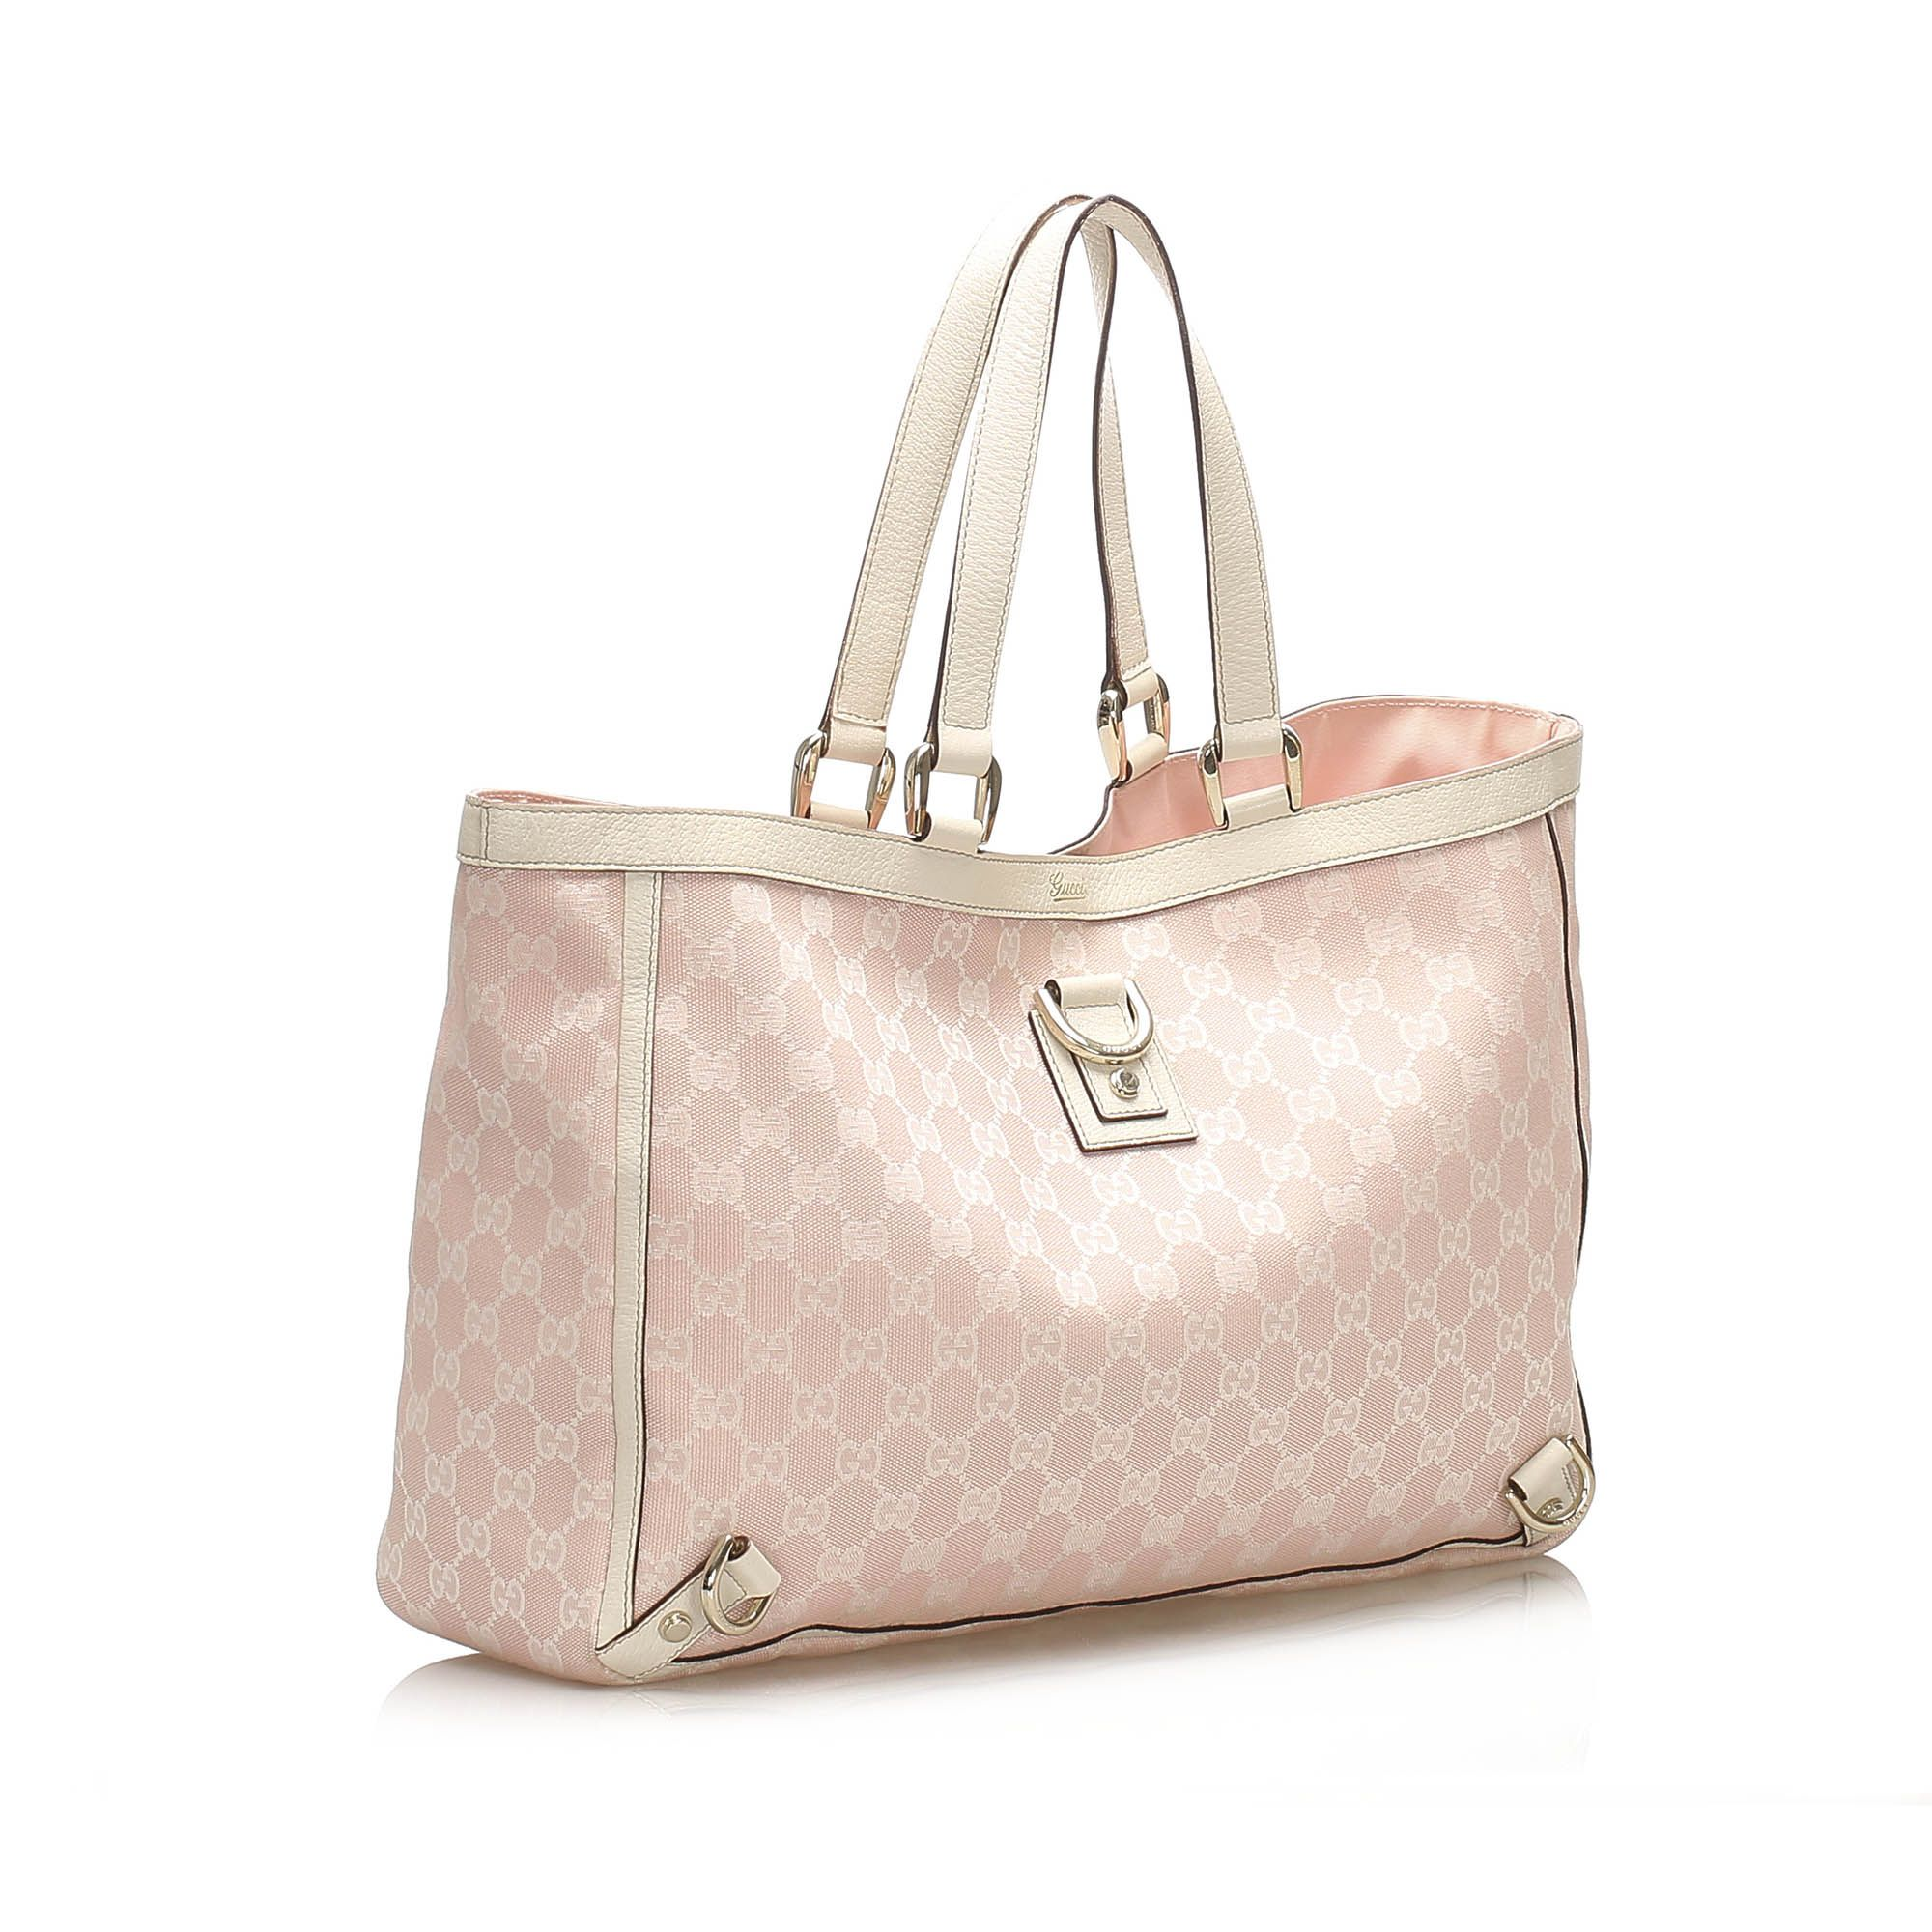 Vintage Gucci GG Canvas Abbey D- Ring Tote Bag Pink